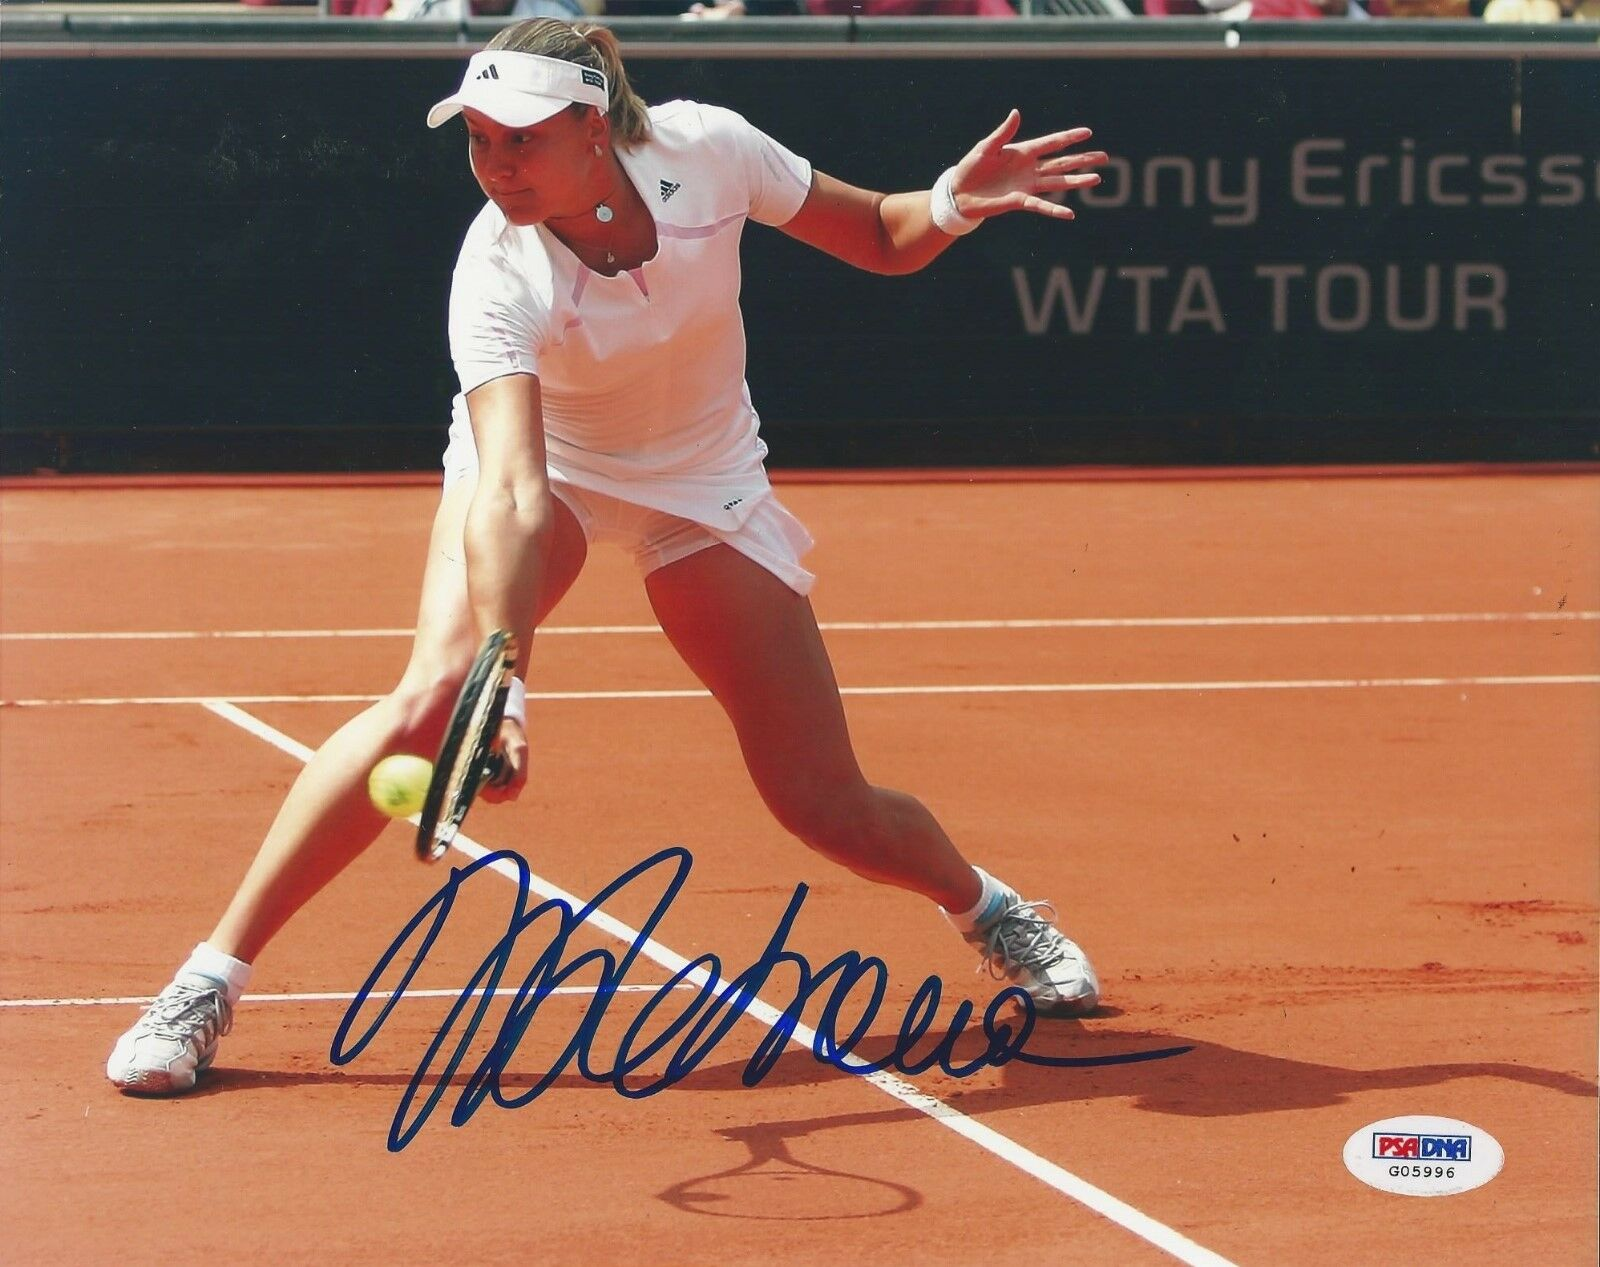 Nadia Petrova Signed 8x10 Photo - PSA/DNA # G05996